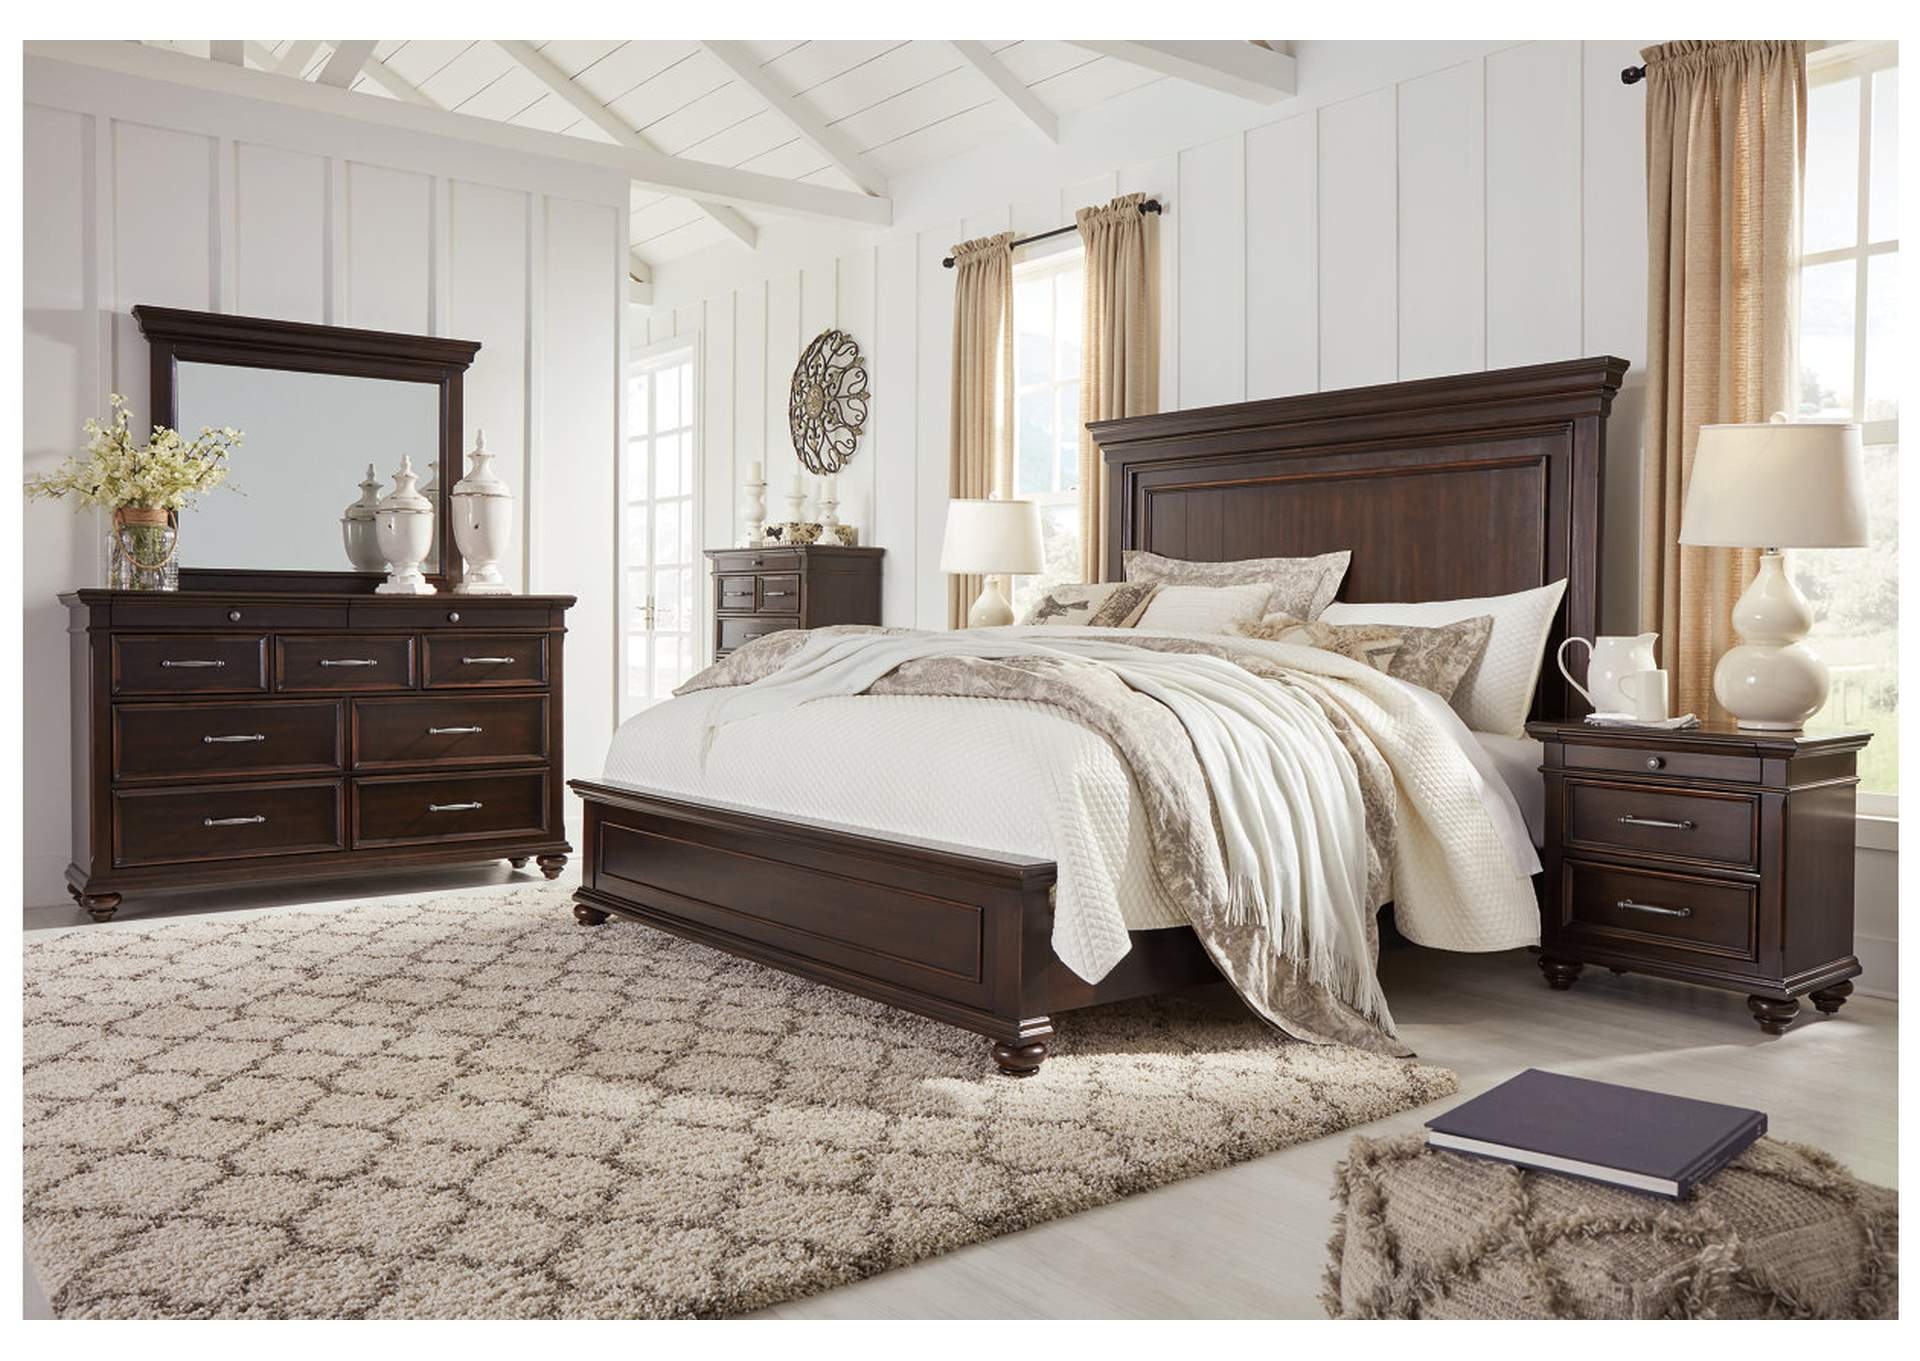 Brynhurst Brown Queen Panel Bed Dresser w/Mirror,Signature Design By Ashley